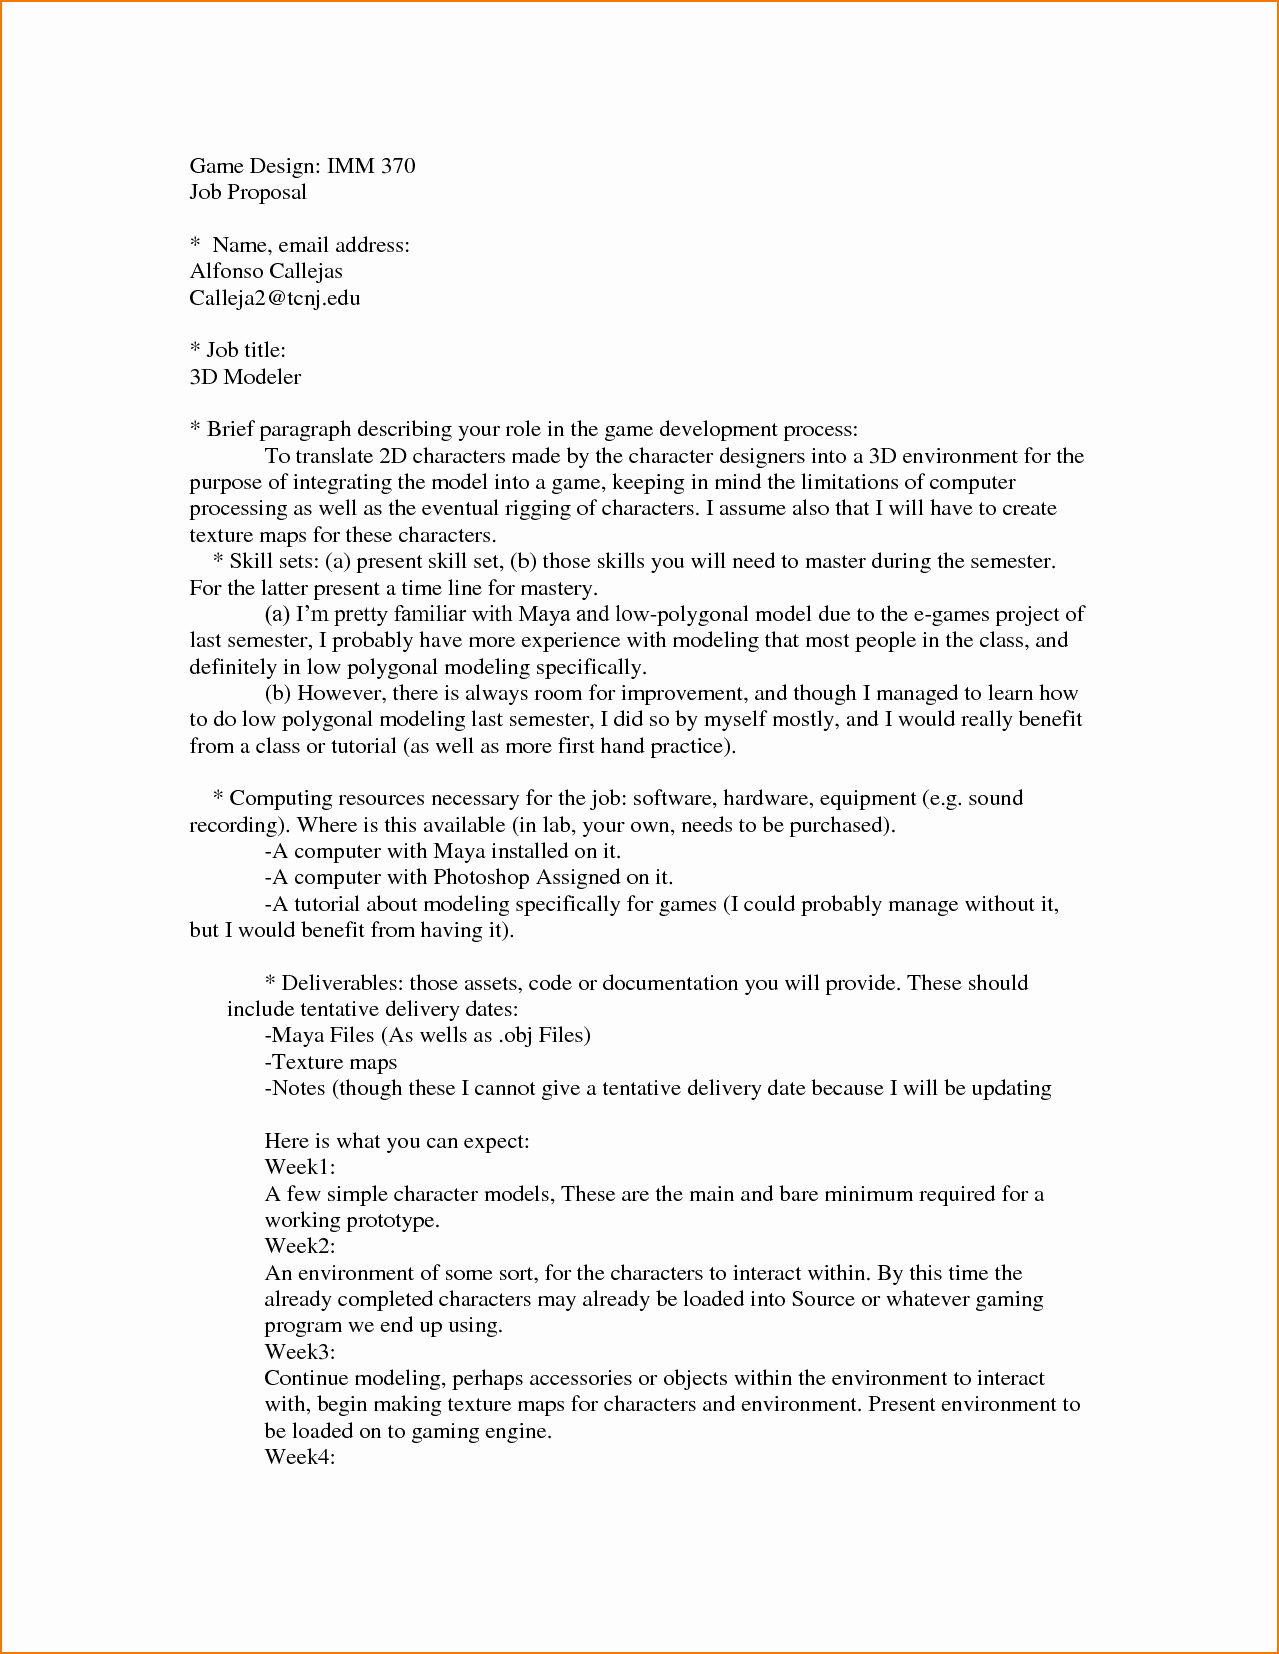 Sample Job Proposal Template Fresh 4 Job Proposal Sample